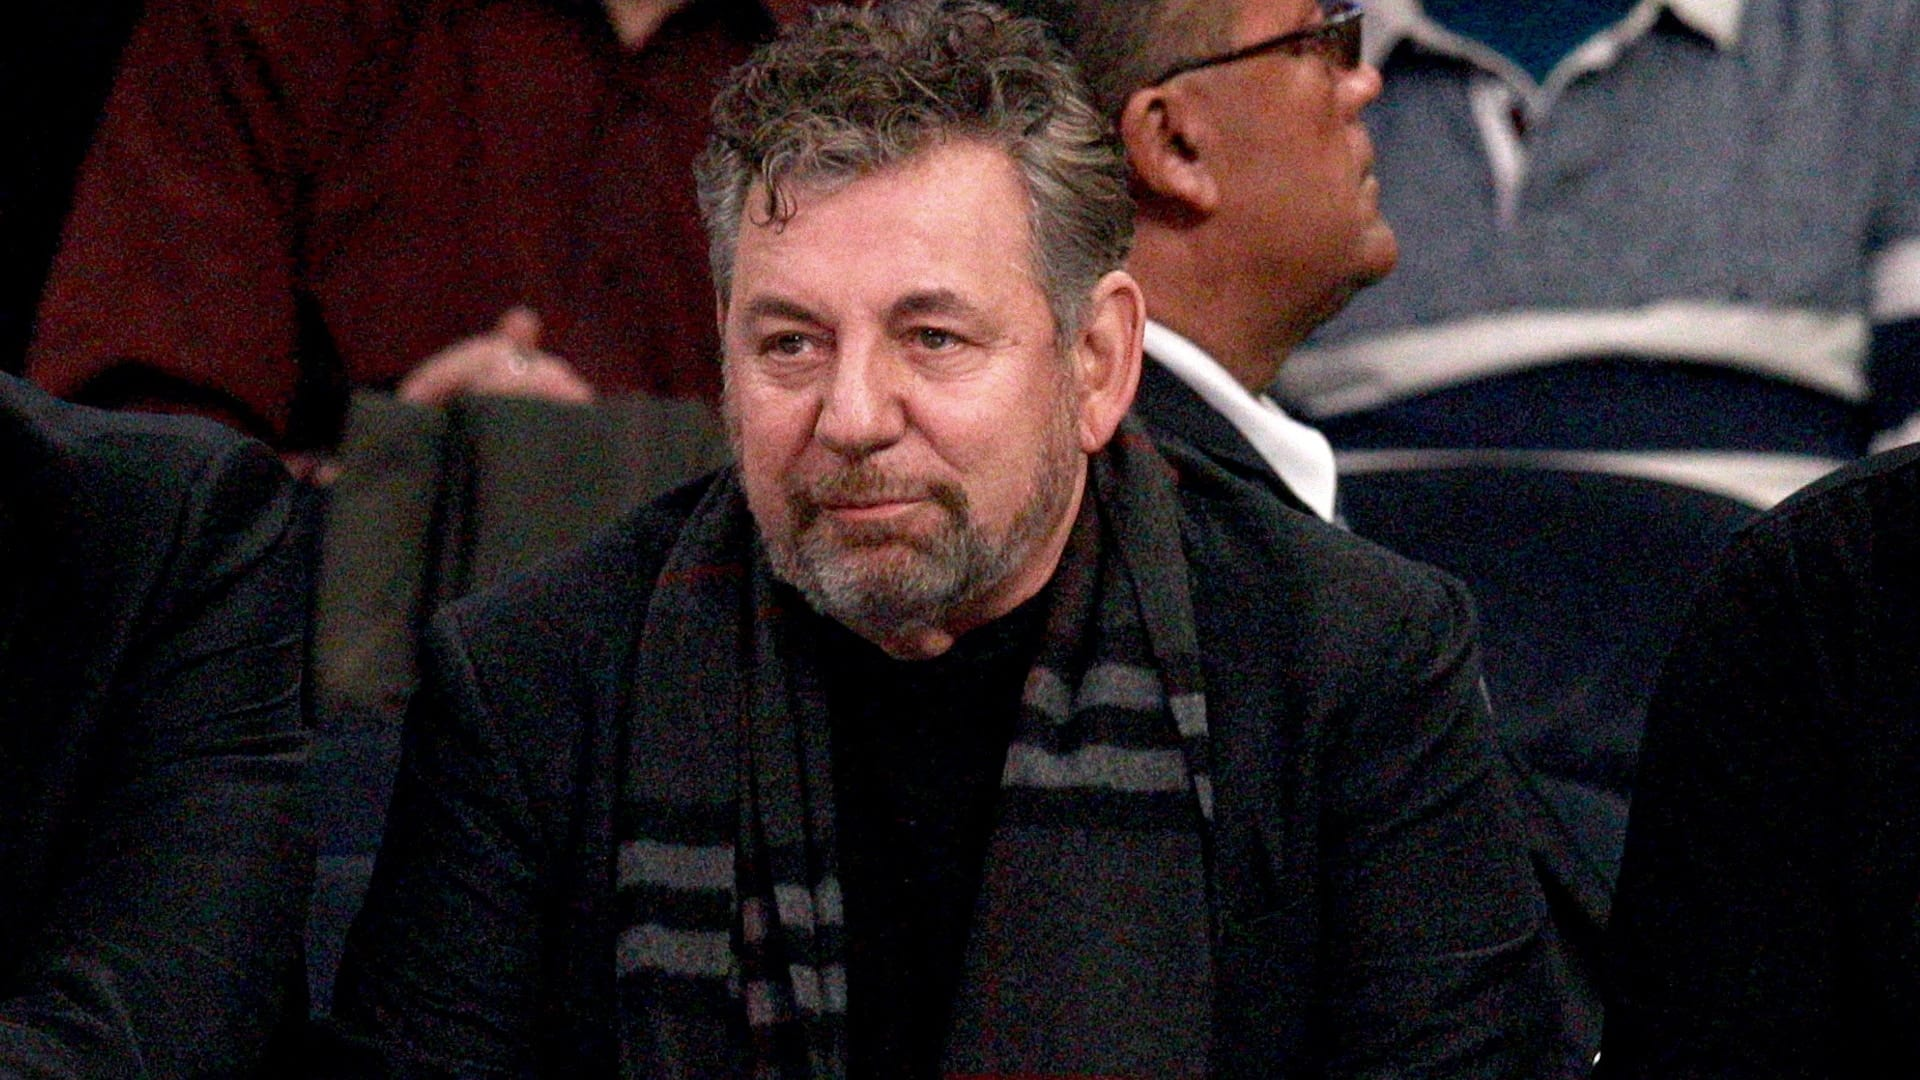 James Dolan Donated to Opponent of U.S. Representative Who Called on Him to Sell Knicks